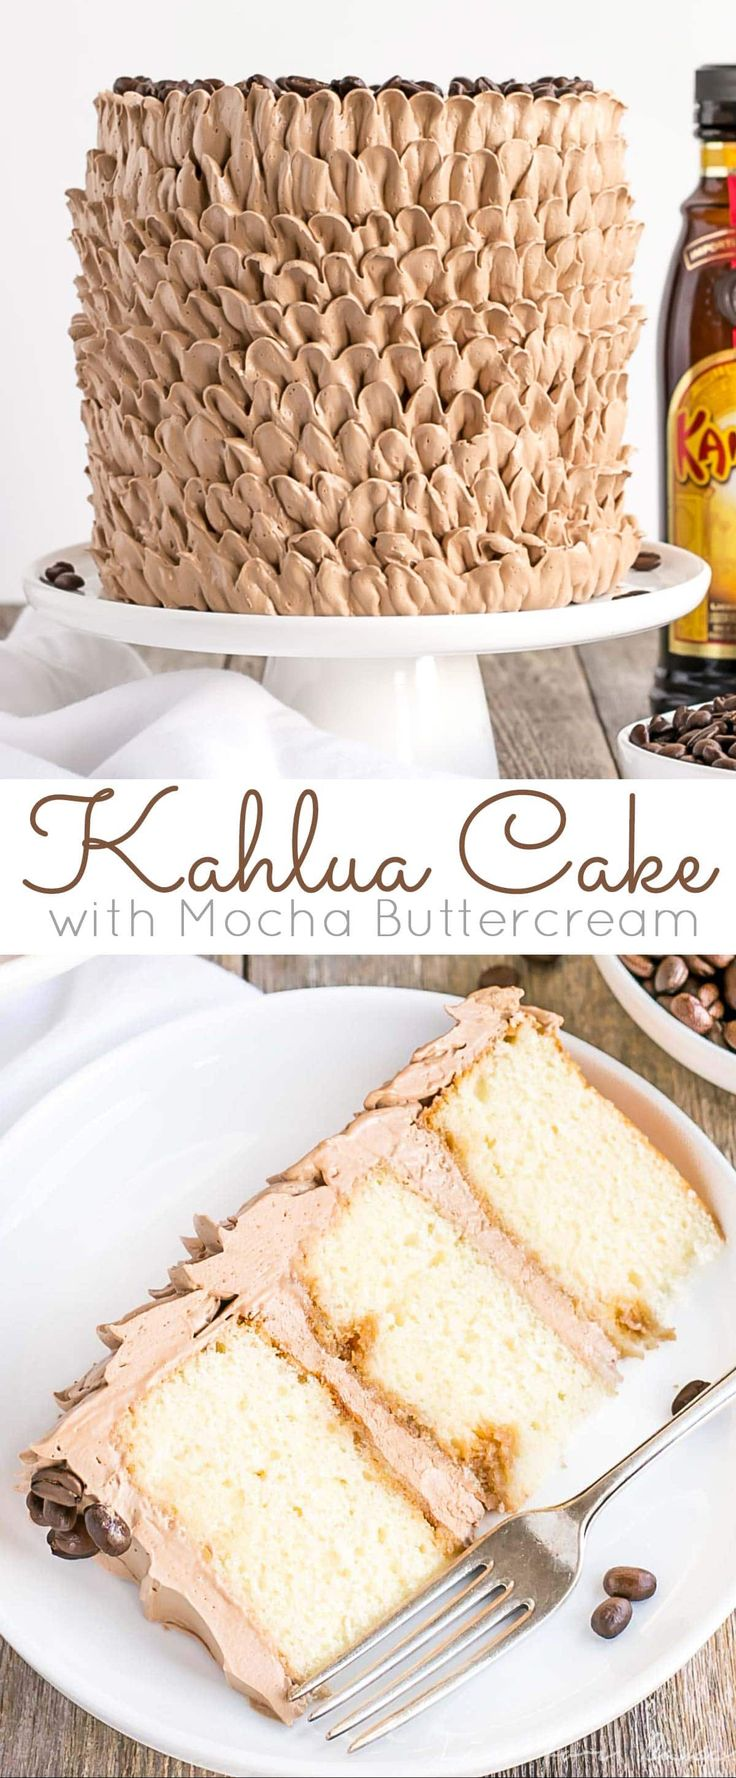 This pretty Kahlua Cake is infused with coffee liqueur & espresso, and adorned with billowy mocha buttercream ruffles. | http://livforcake.com